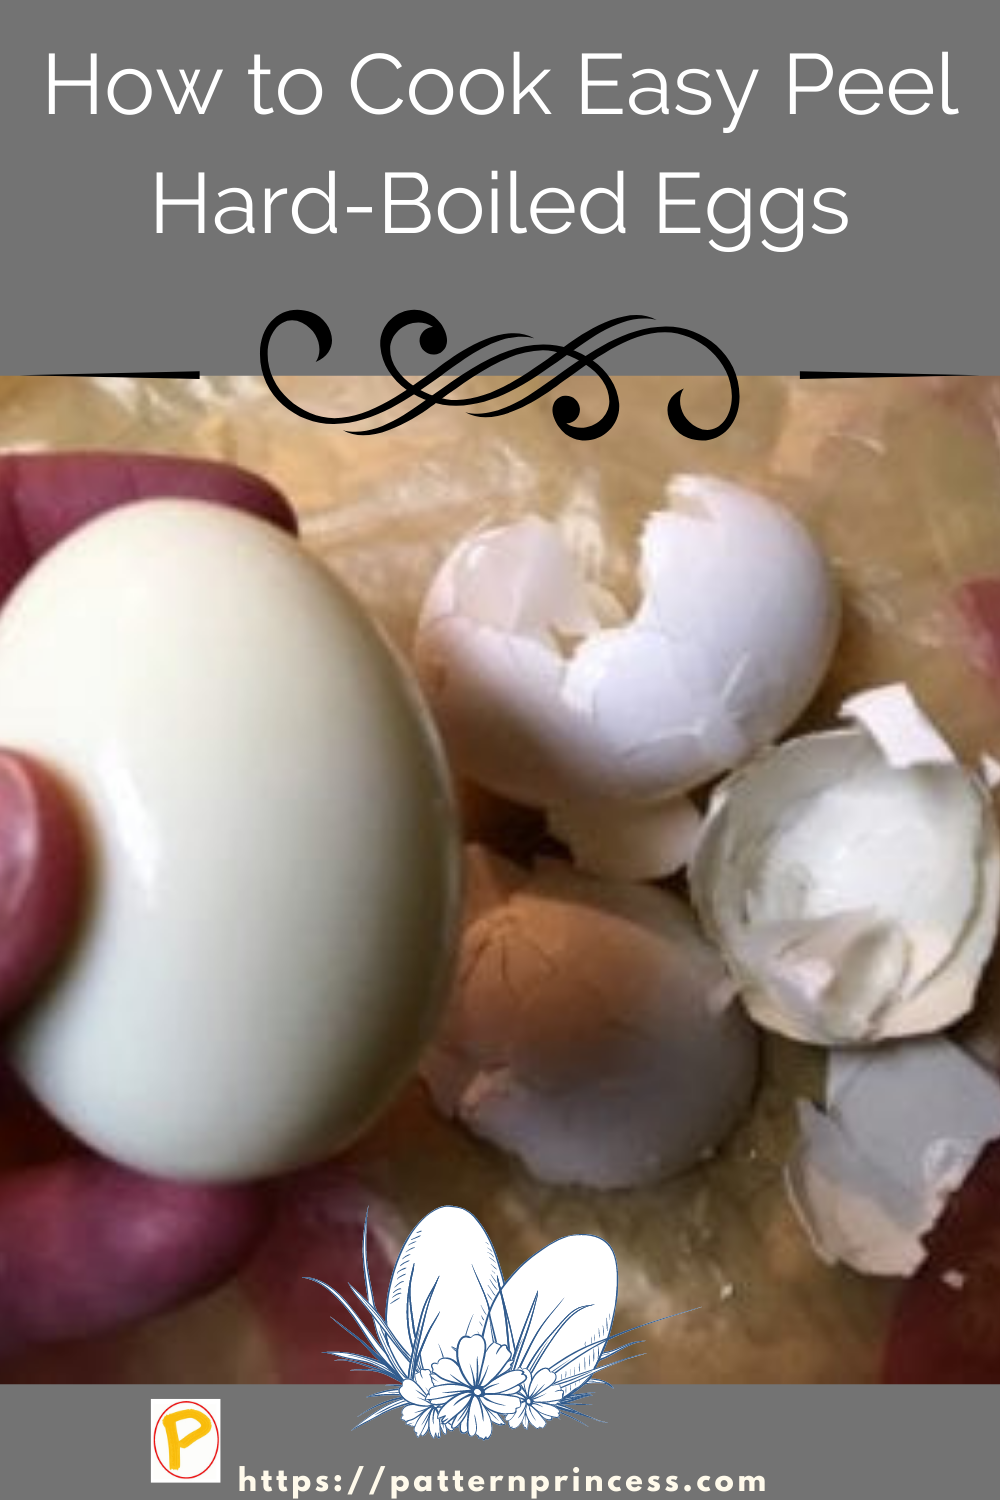 How to Cook Easy Peel Hard-Boiled Eggs